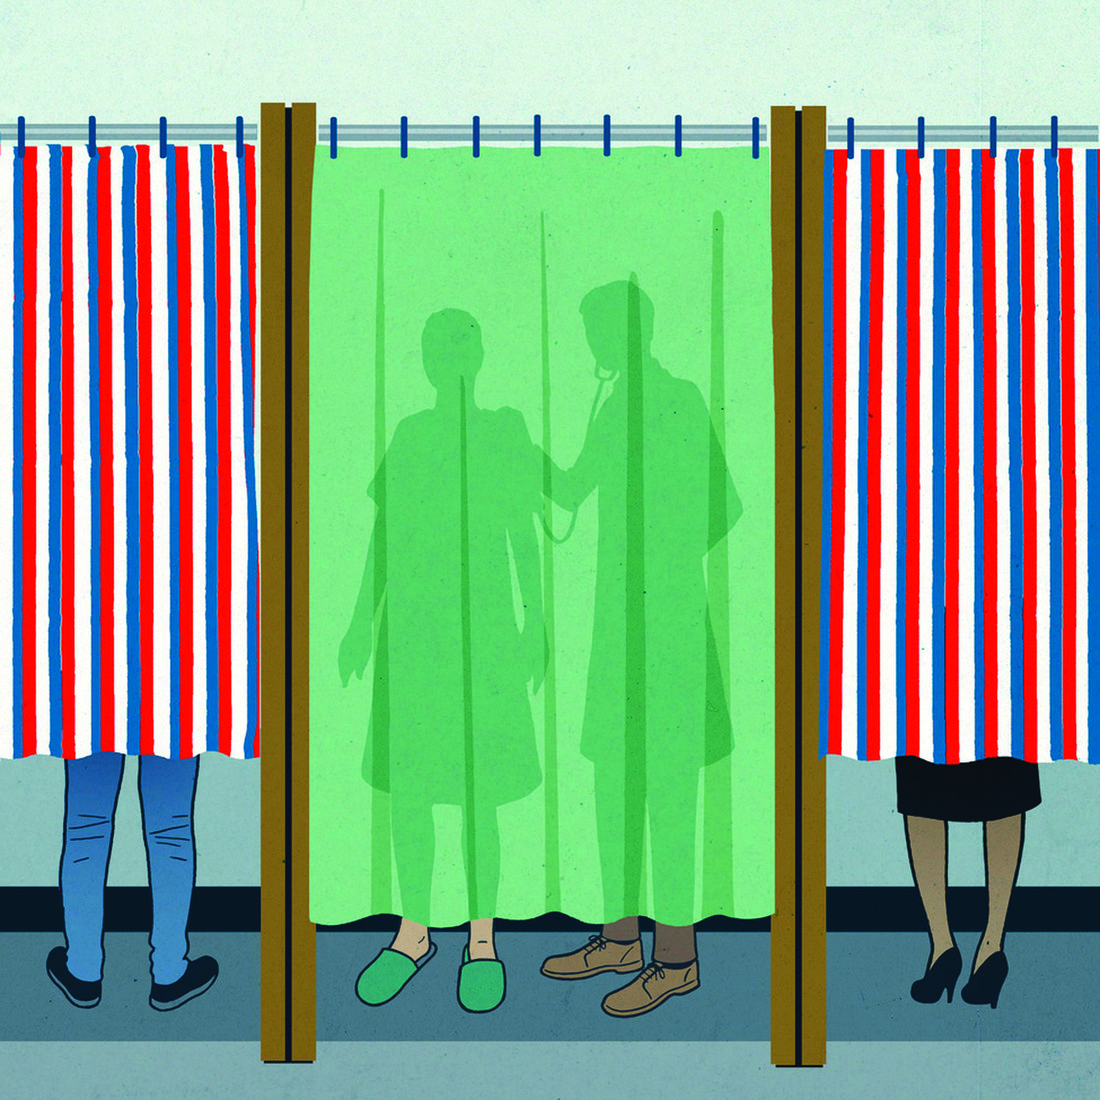 Health and voting